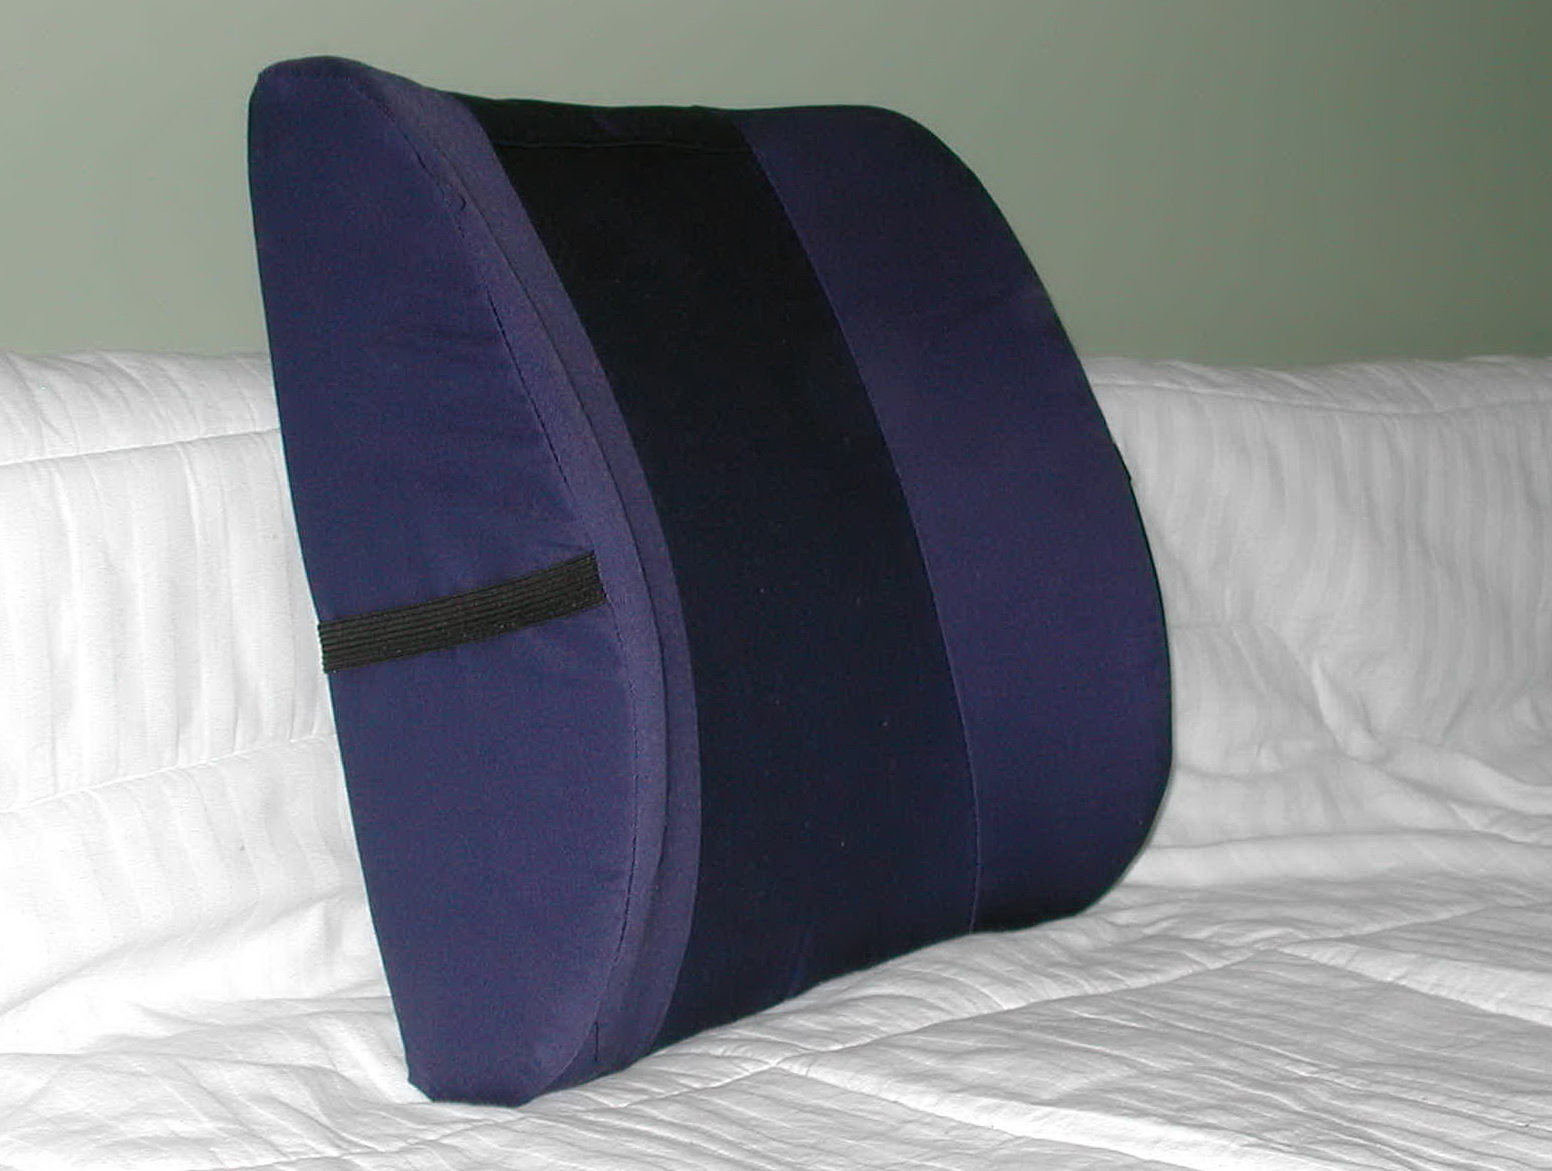 Portable Seat Cushions Back Pain